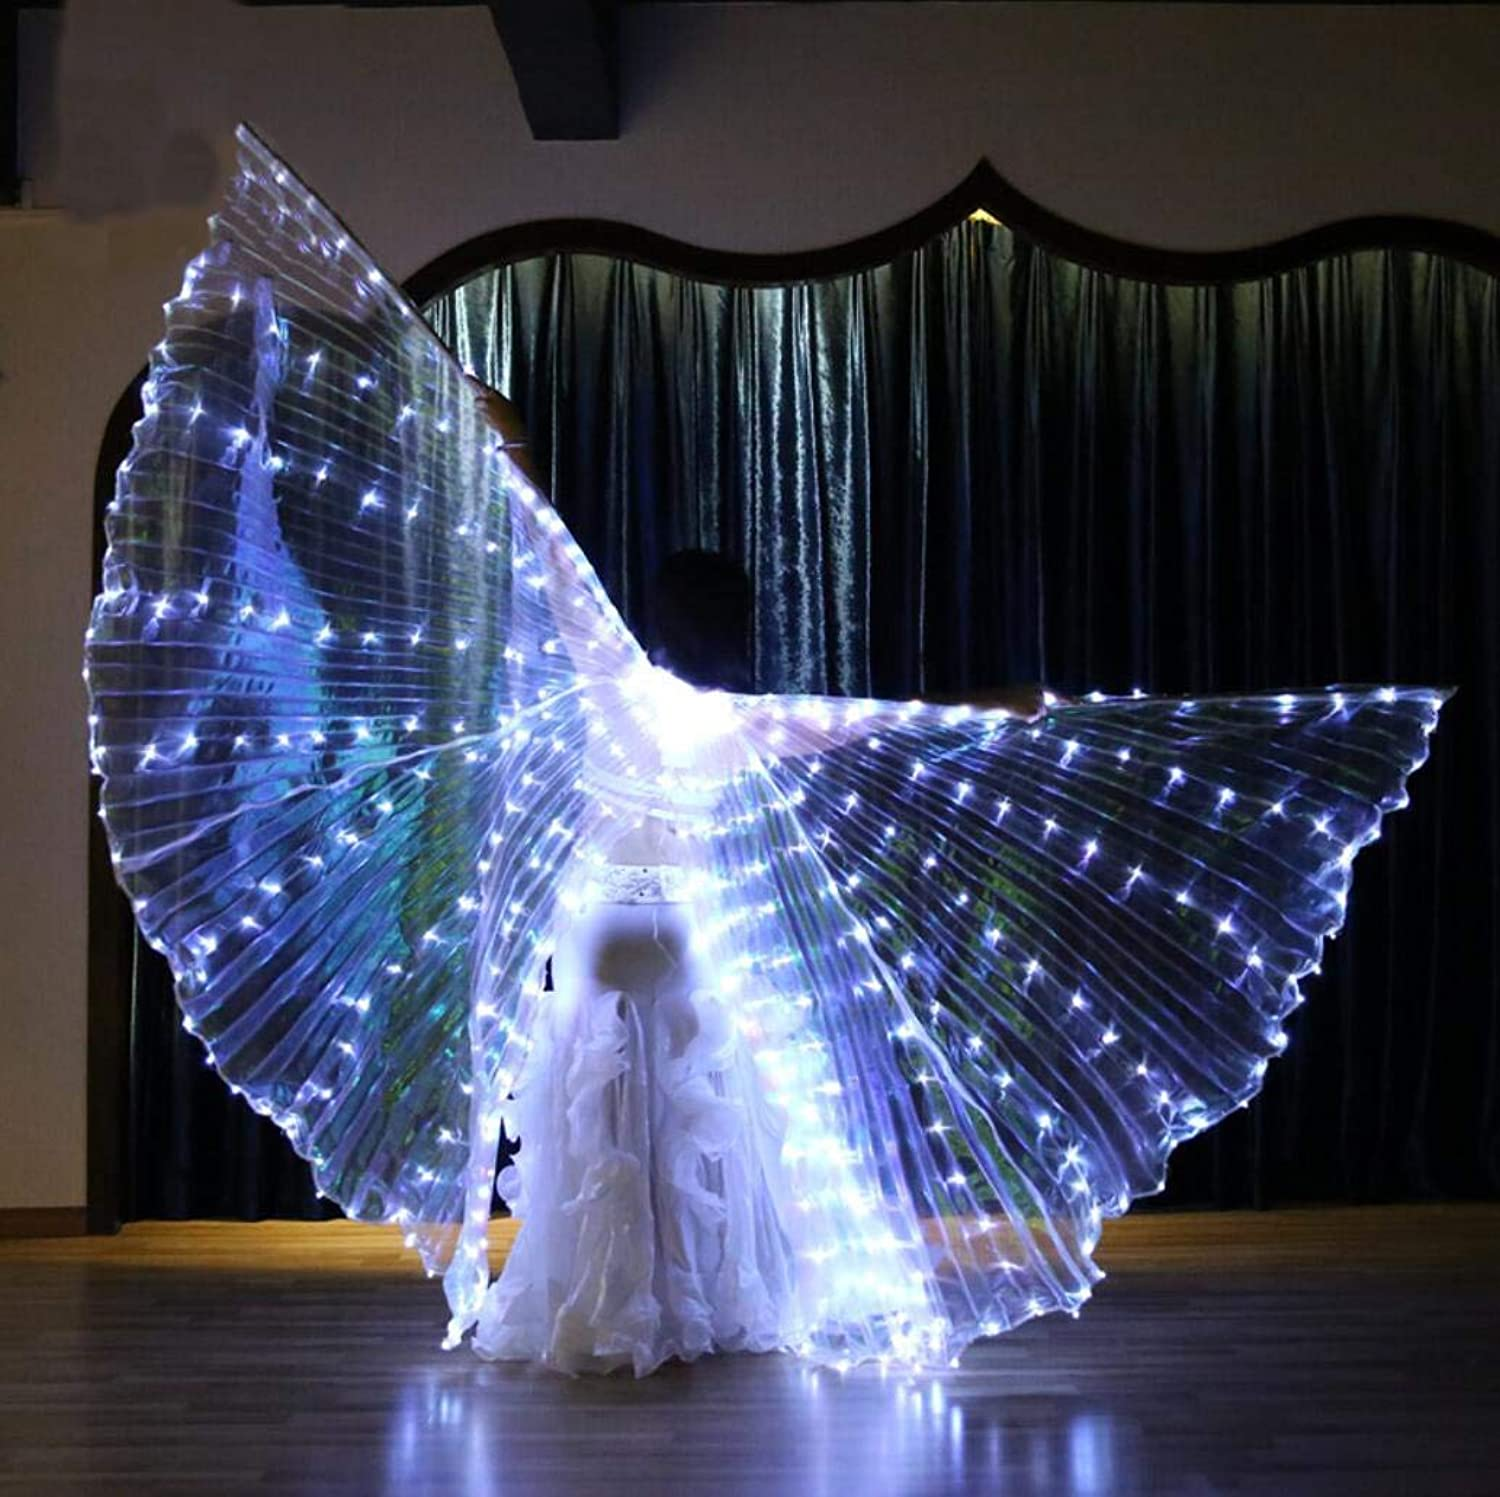 Dance Fairy Opening Belly Dance LED Isis Wings with Sticks RodsWings LED Luminous Light Up Stage Performance Props Suitable for Belly Dancing, Performance, Photography